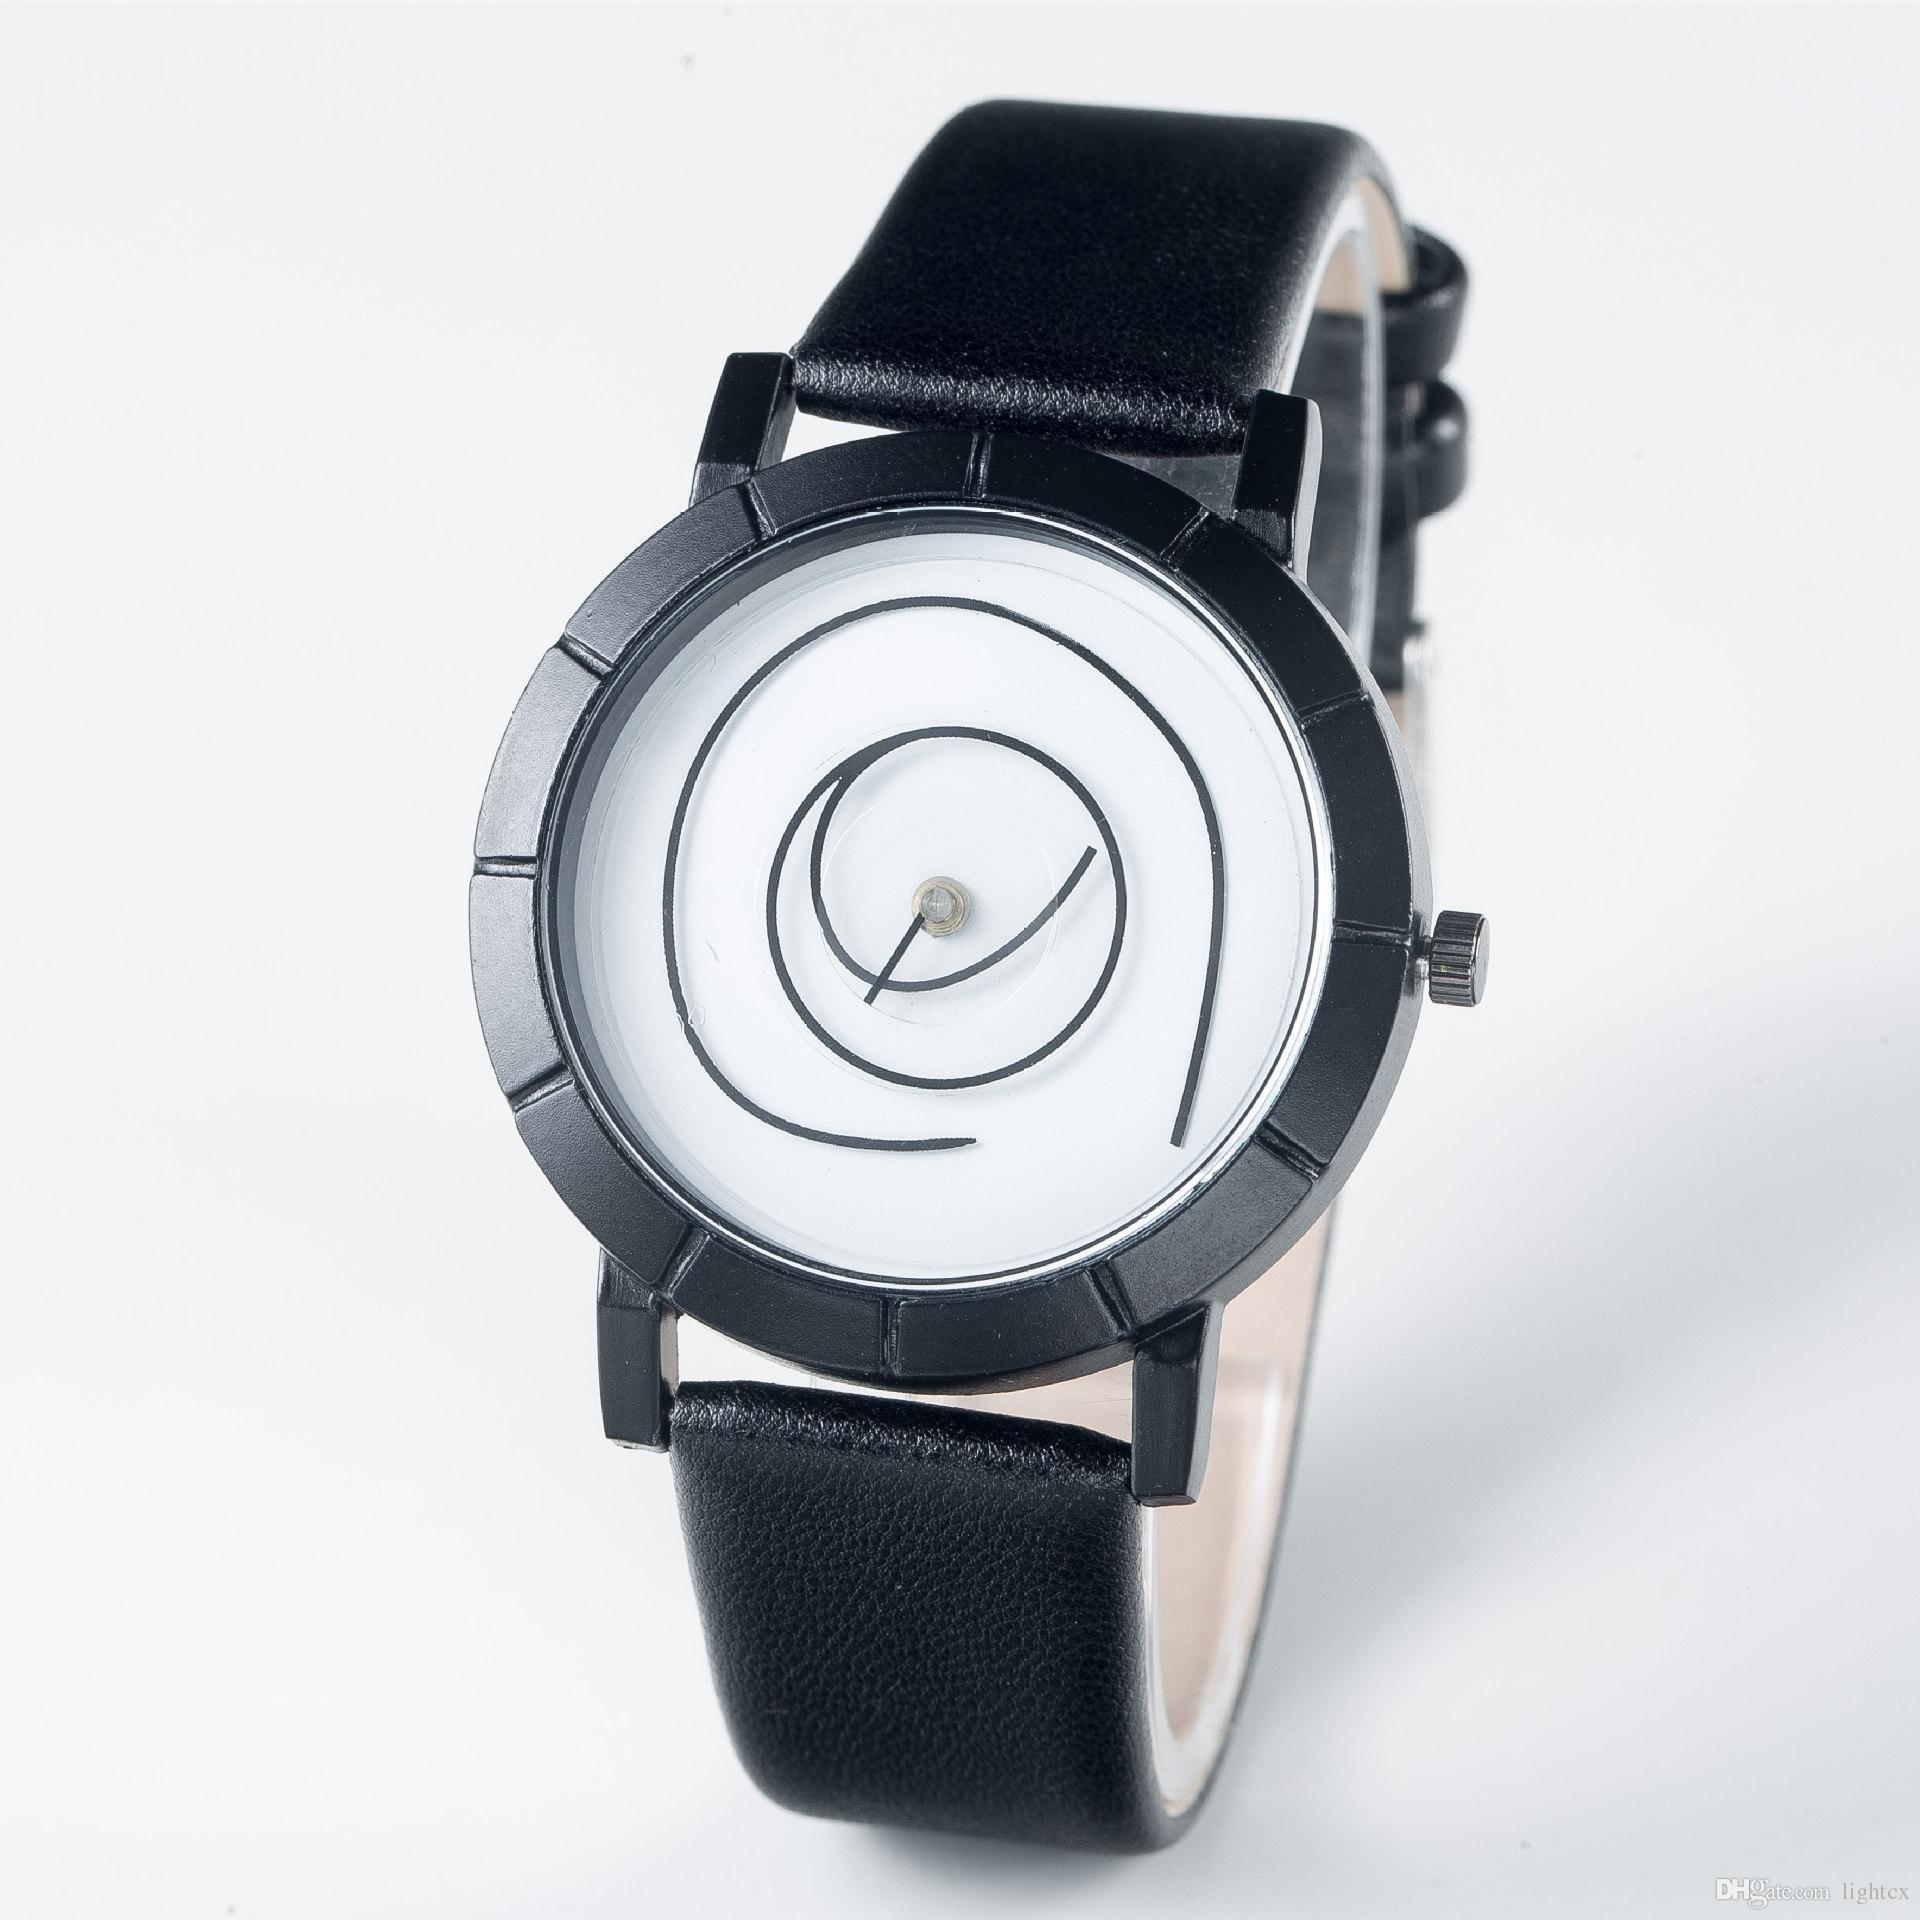 Designs of fashion wrist watches for him & her